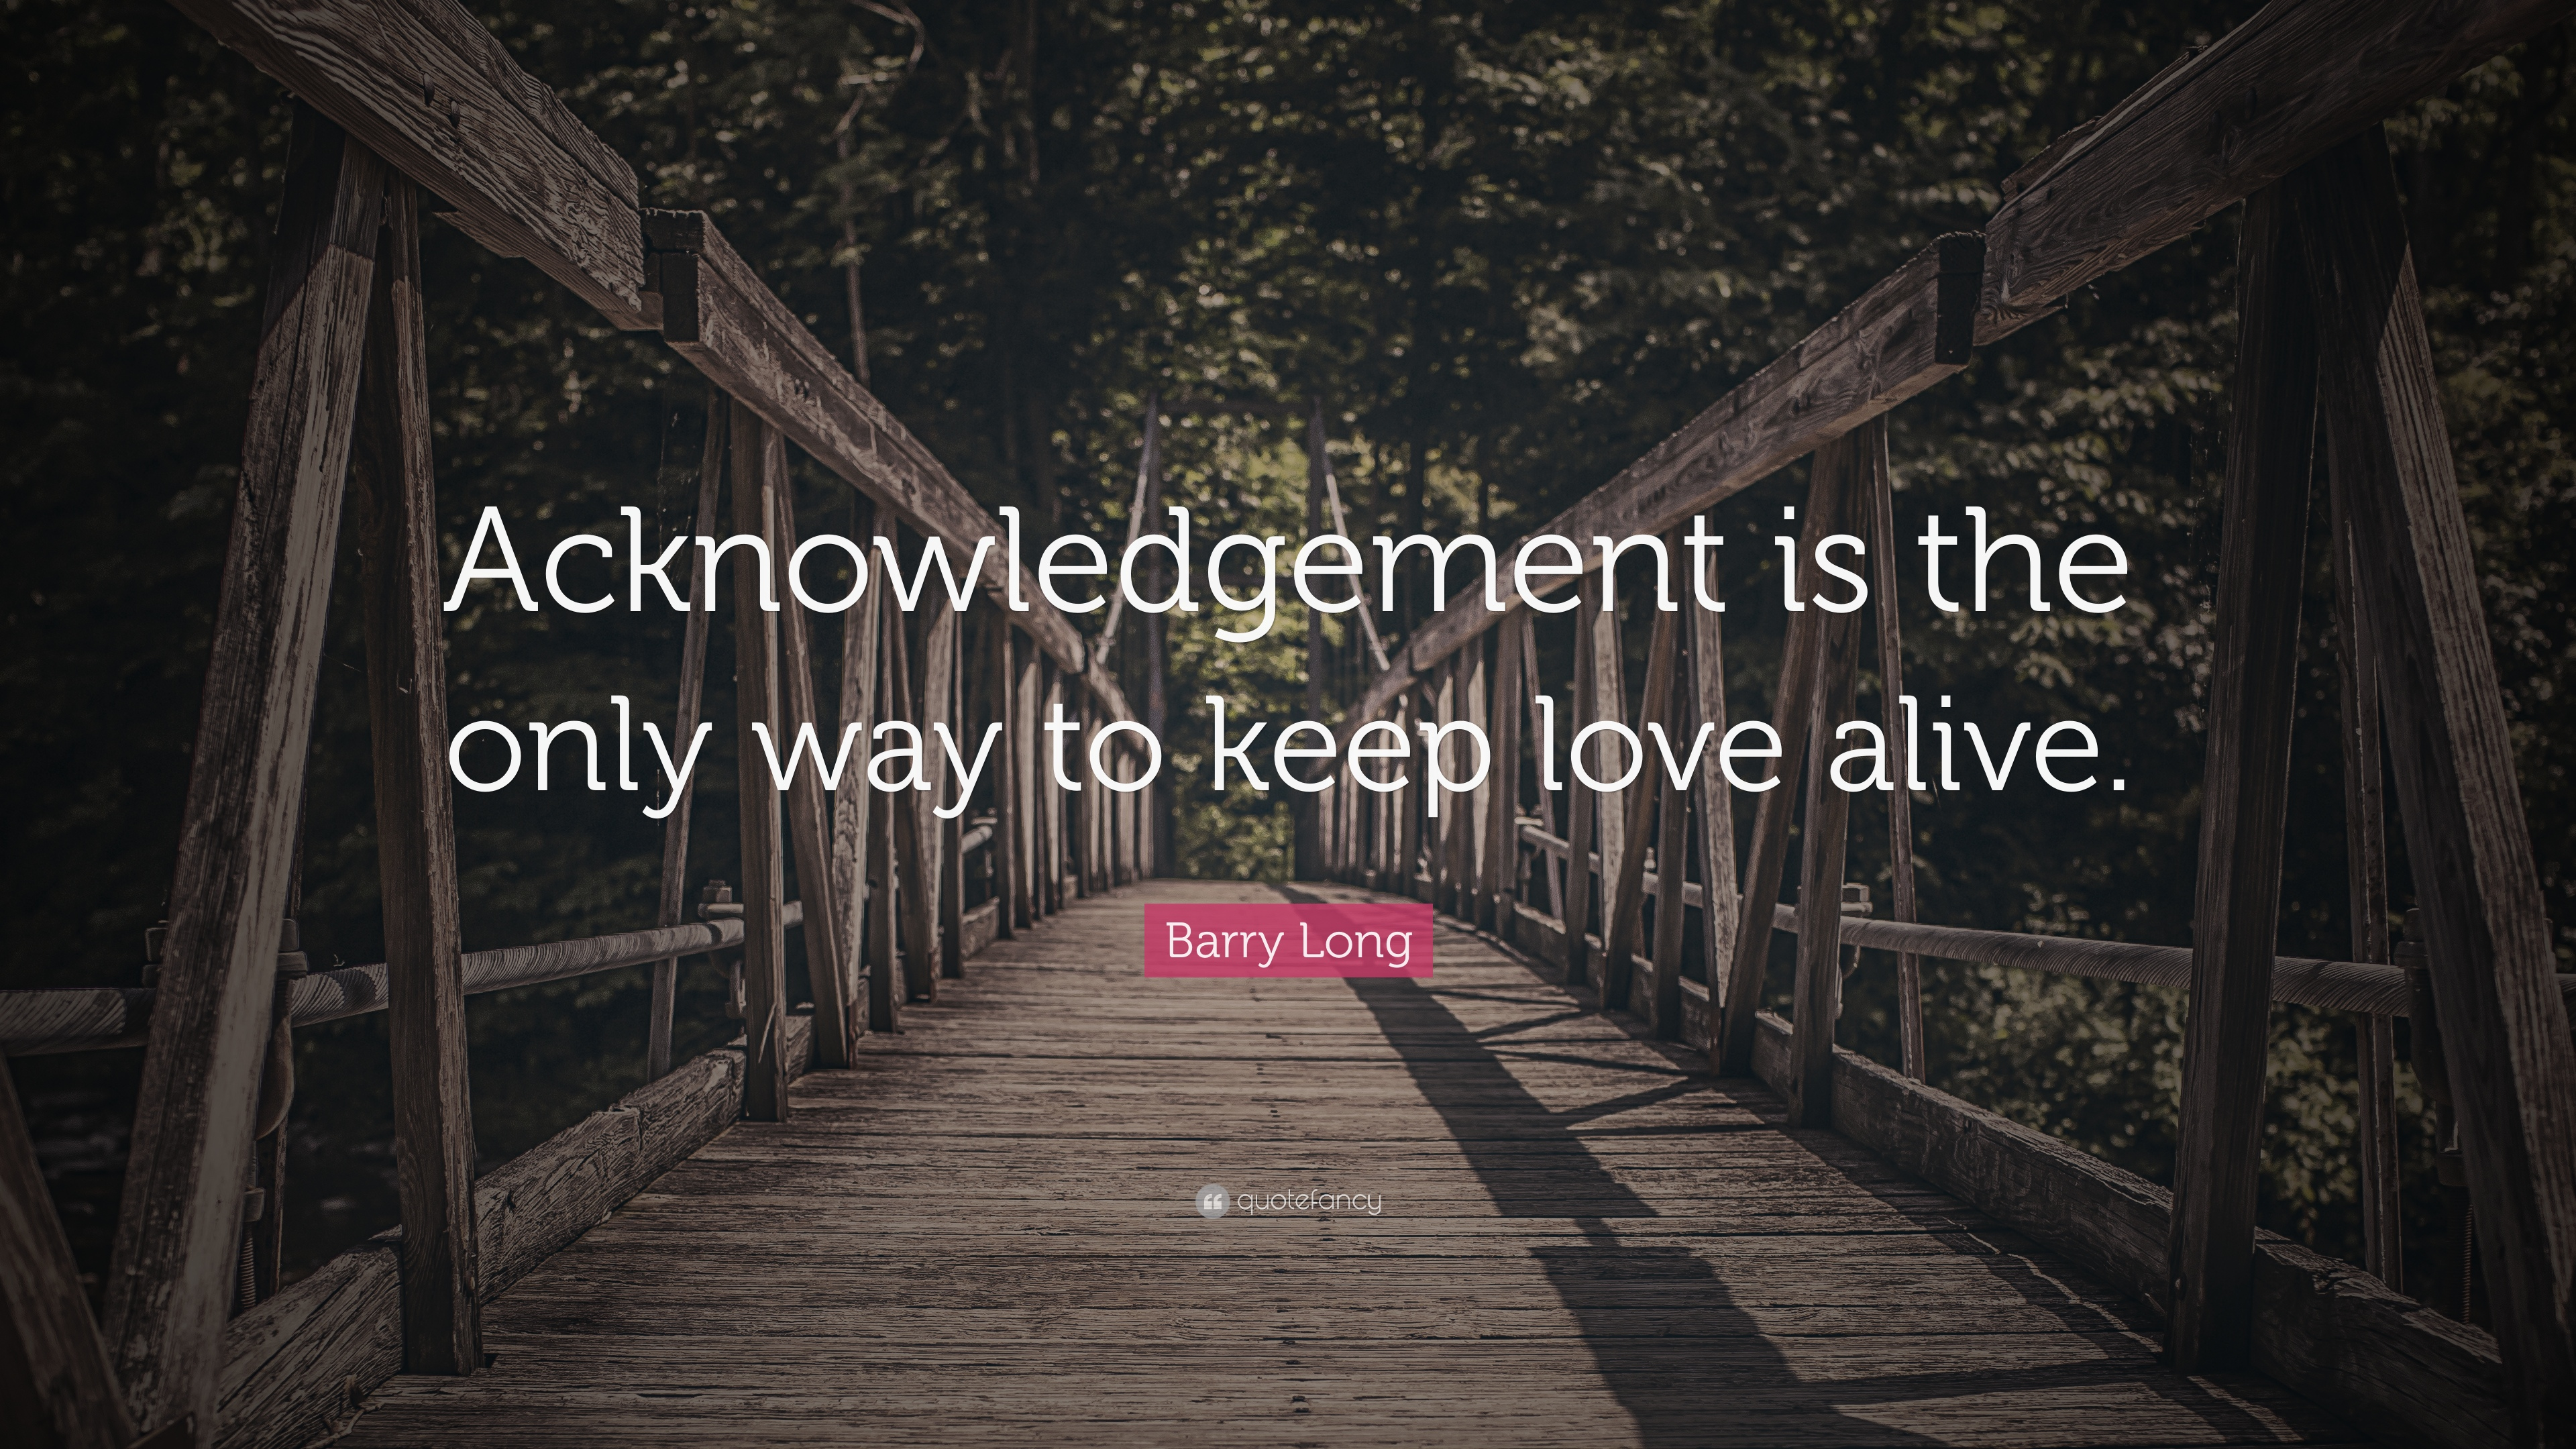 barry long quote acknowledgement is the only way to keep love